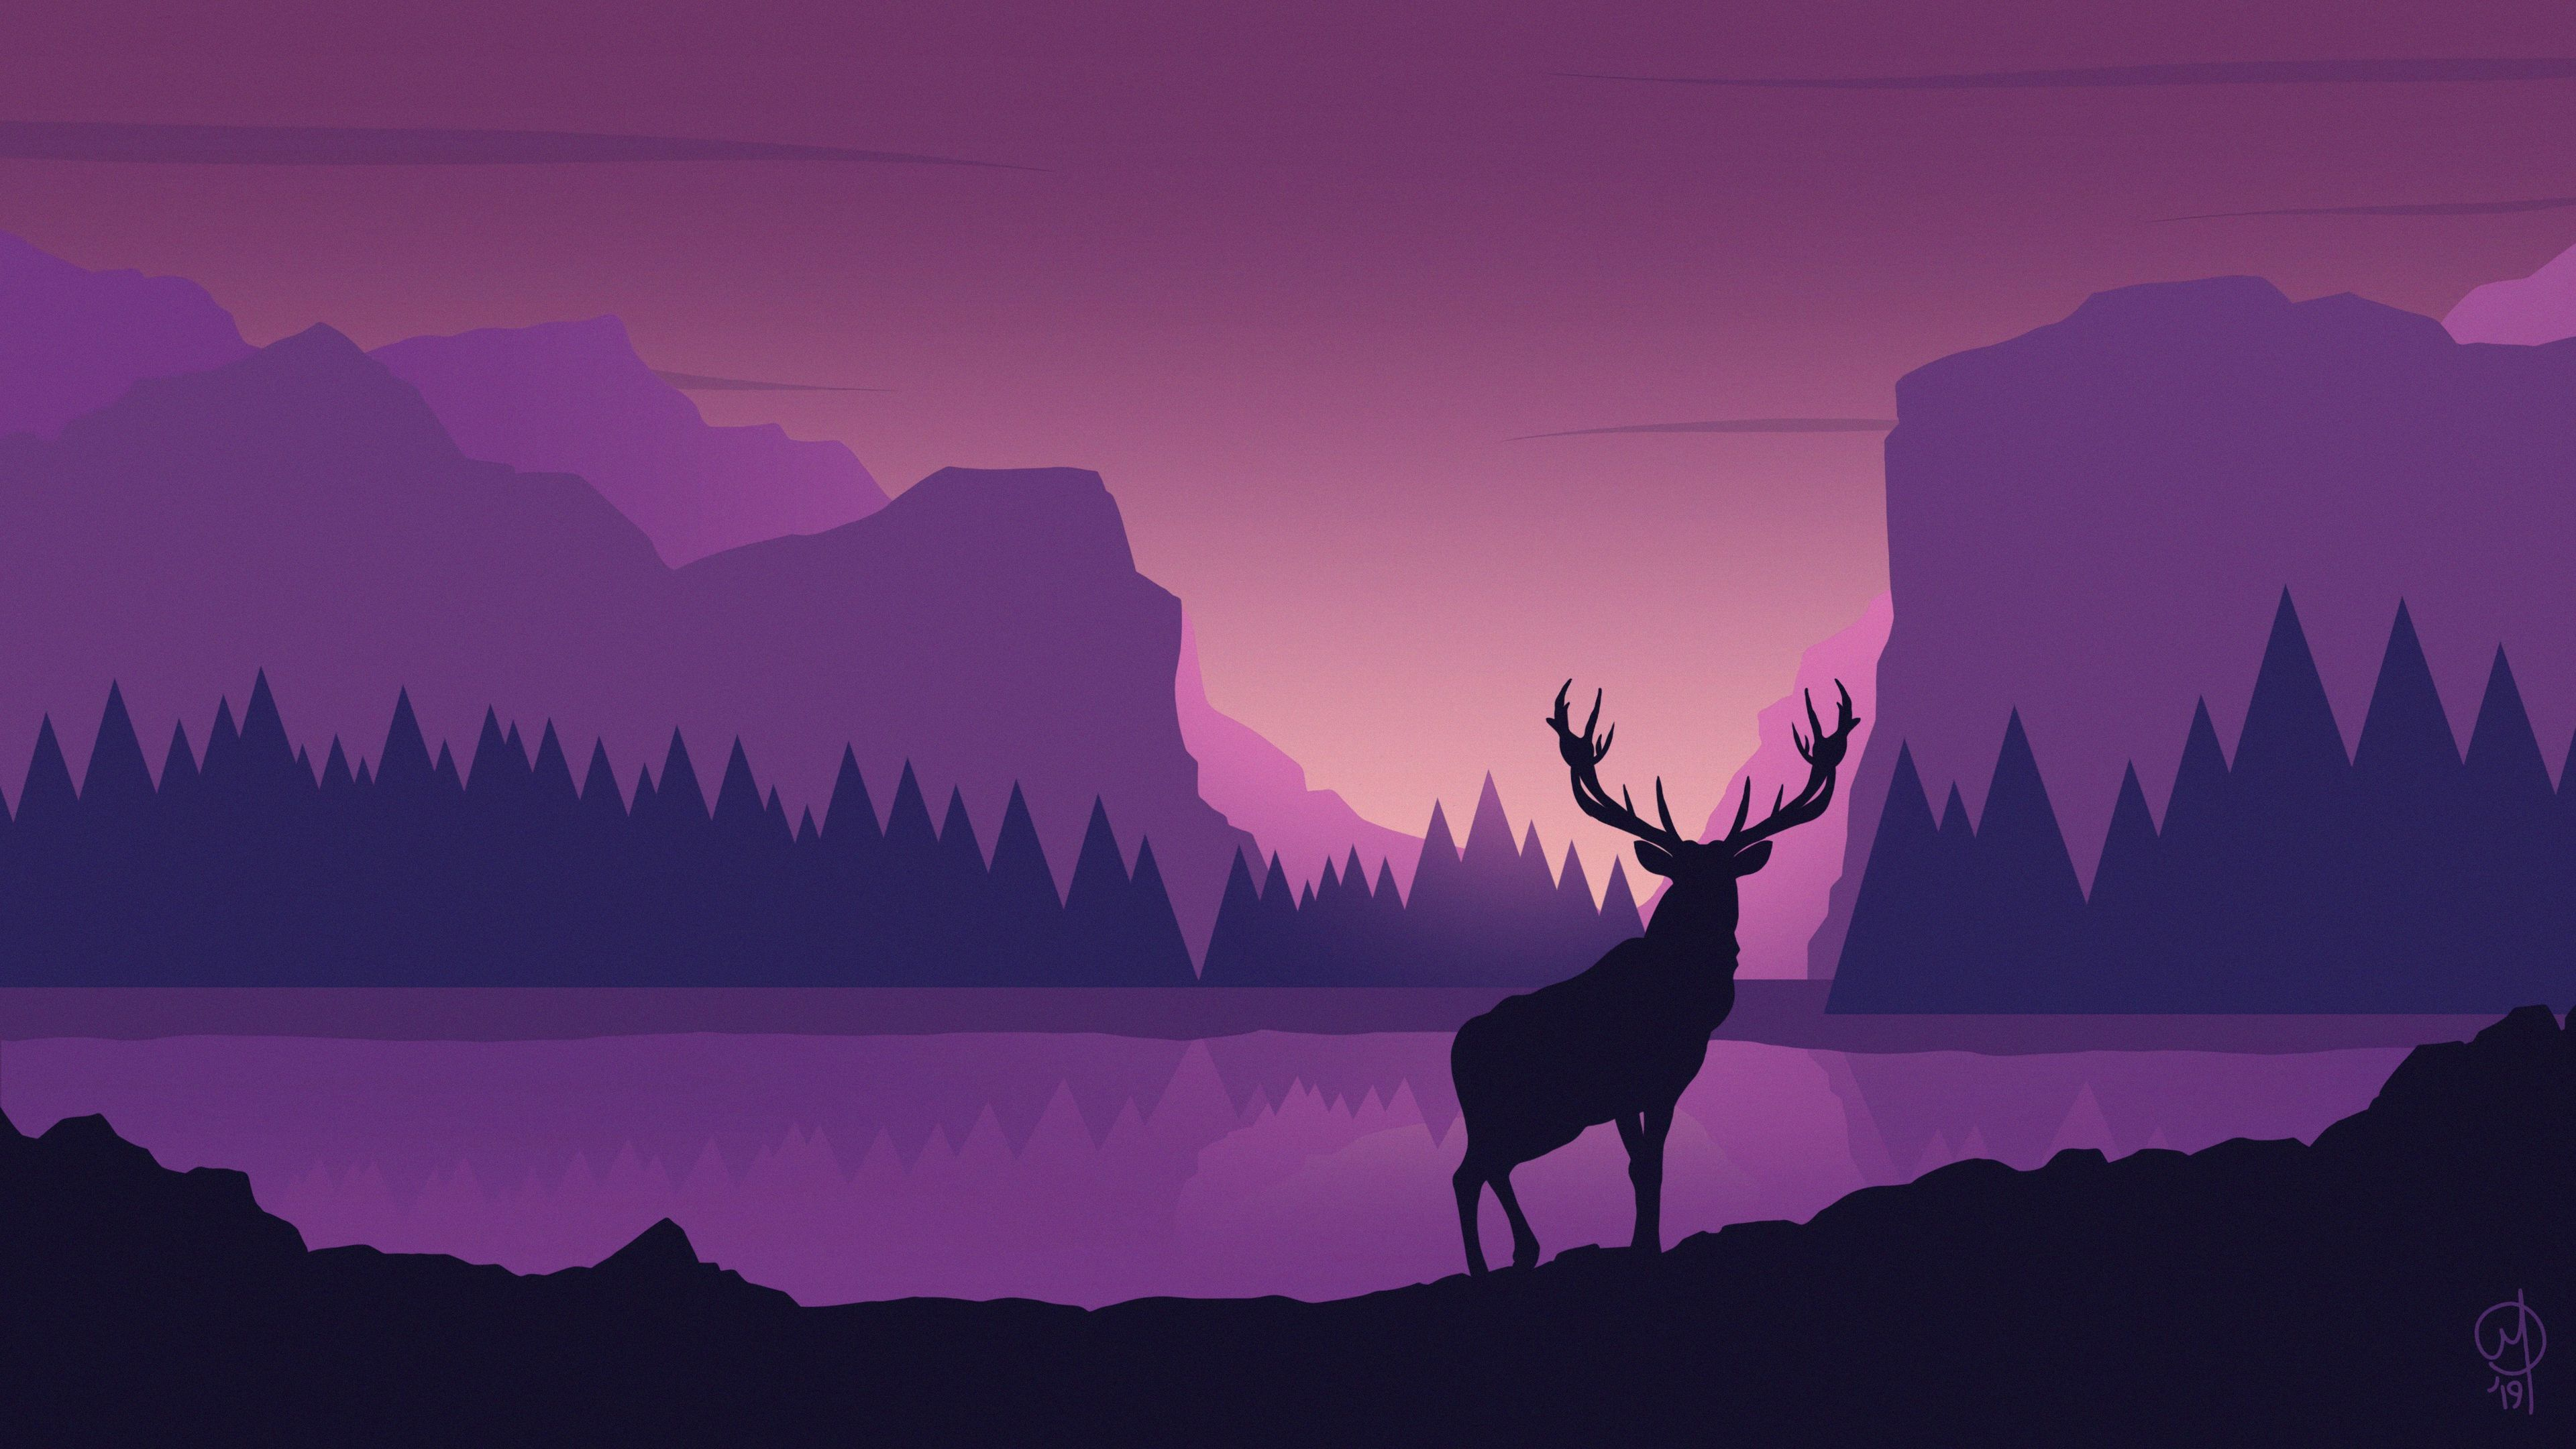 Deer Digtial Vector Art 4k minimalist wallpapers ...